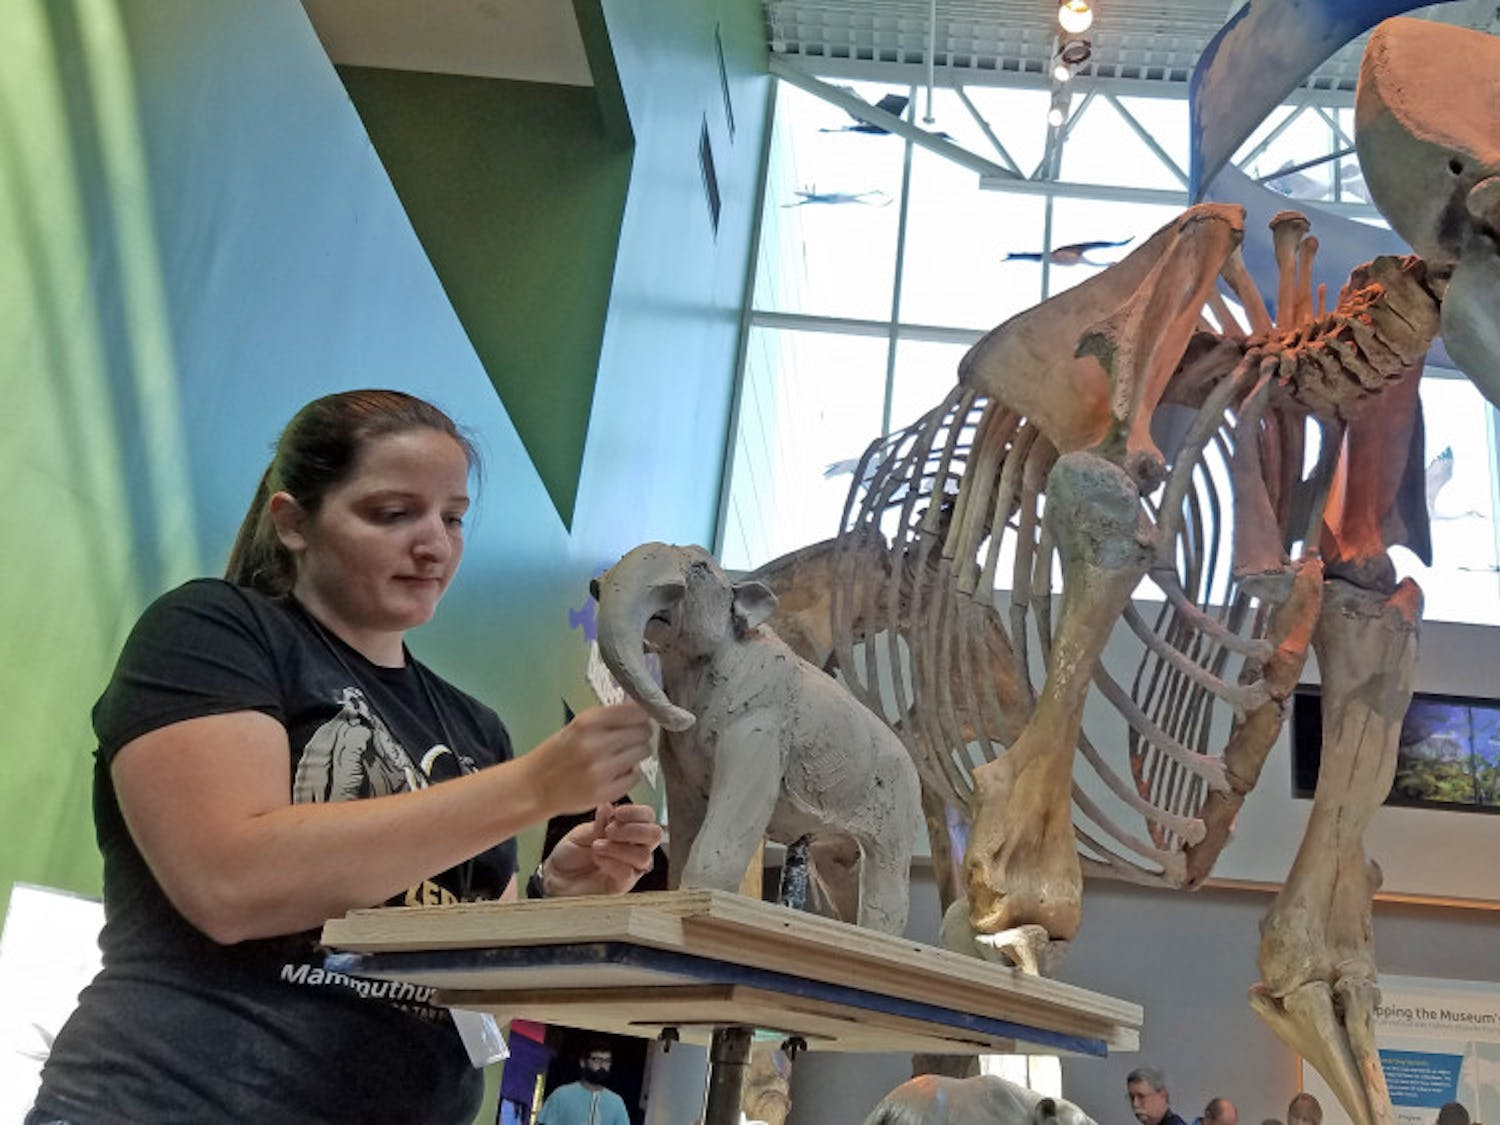 Ariel Bowman, 28, works on a sculpture of a mastodon at the National Fossil Day event at the Florida Museum of Natural History on Saturday. Bowman is a ceramics graduate student who works on sculpting prehistoric creatures.